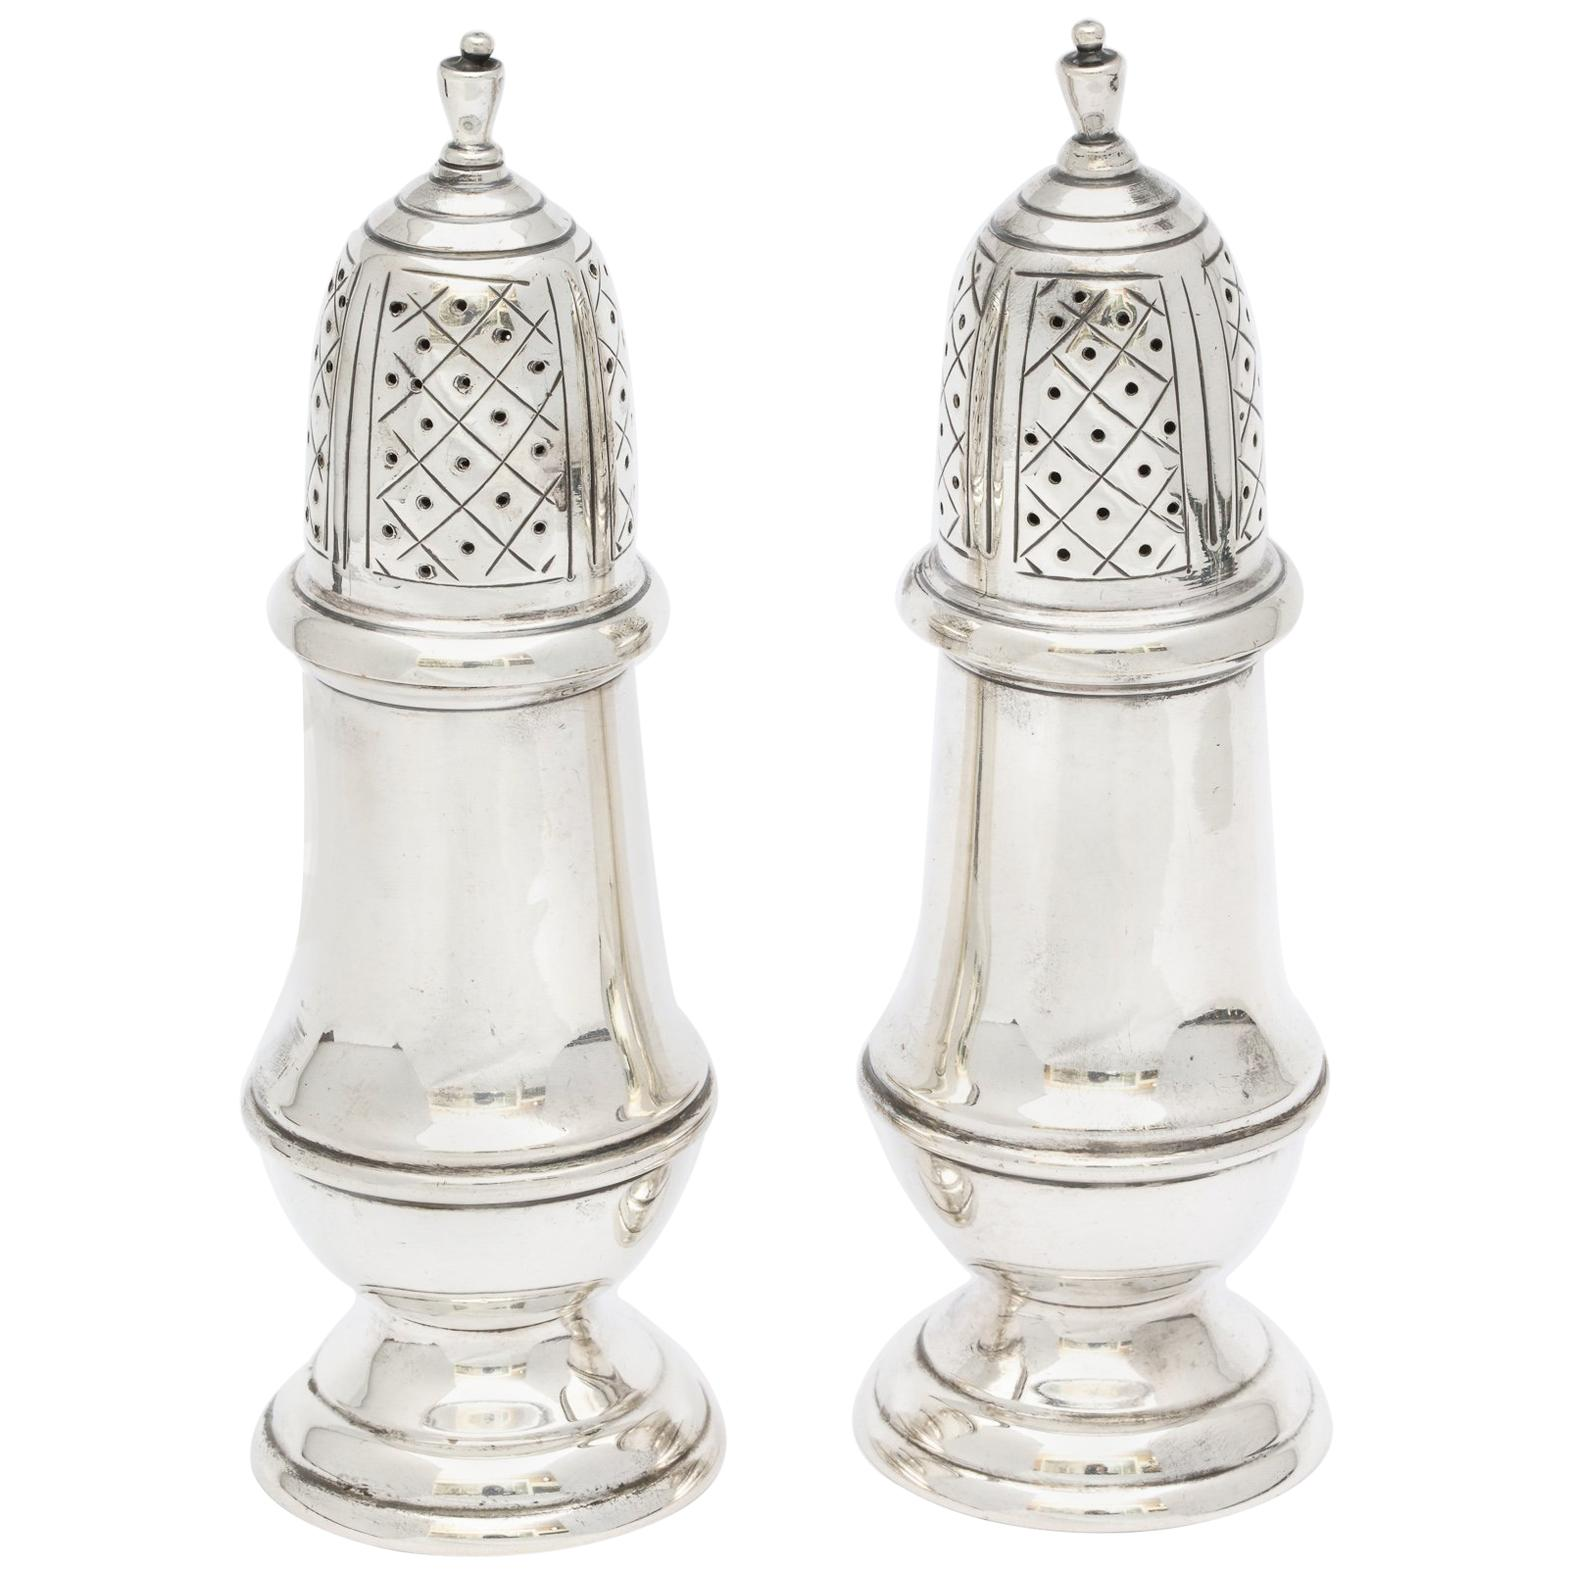 Pair of Sterling Silver American Colonial, Style Salt and Pepper Shaker/Casters